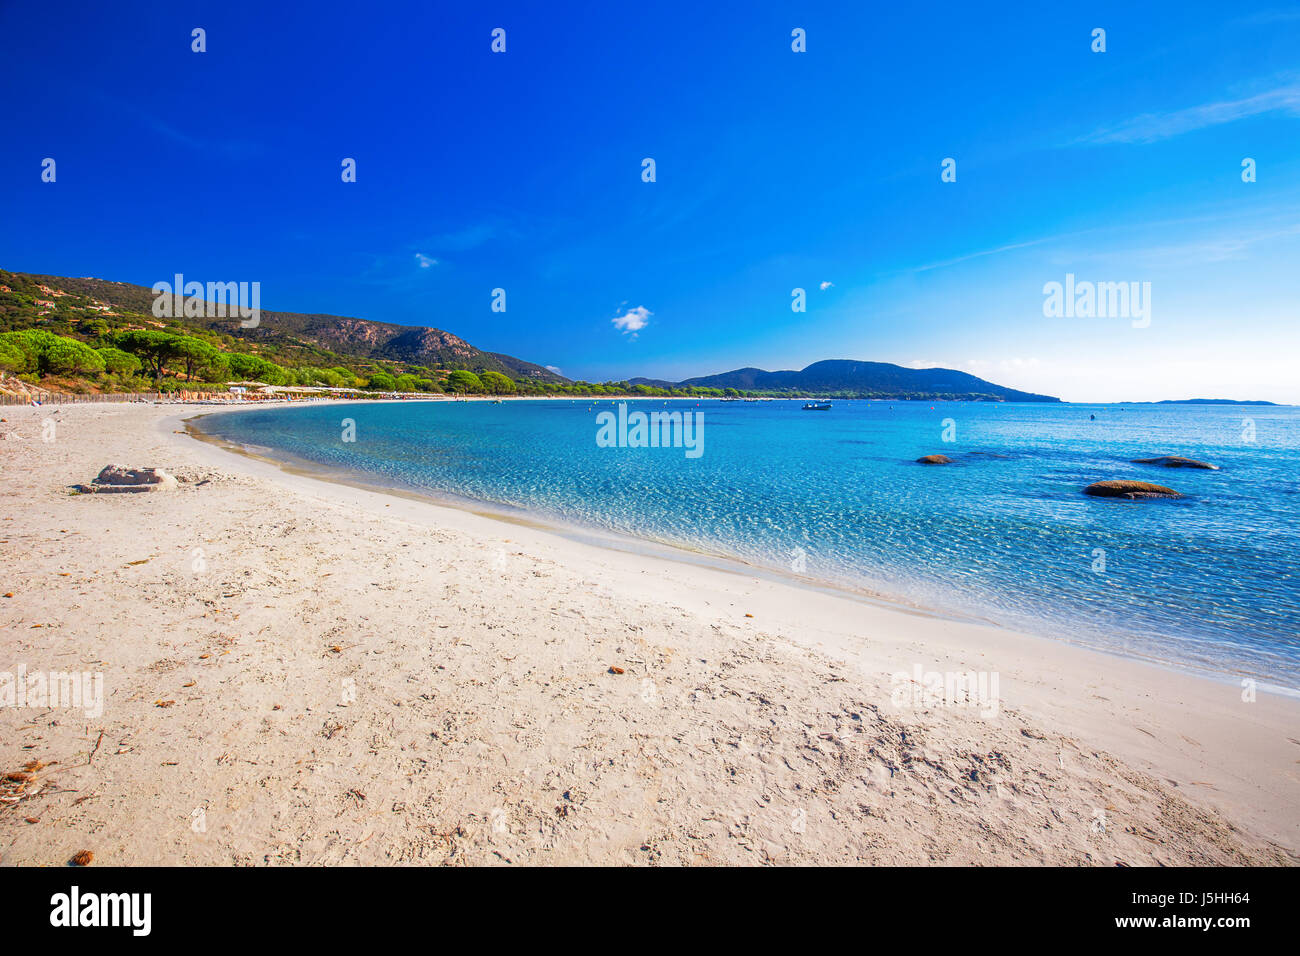 Pine trees on Palombaggia beach with azure clear water and sandy beach on the south part of Corsica, France - Stock Image